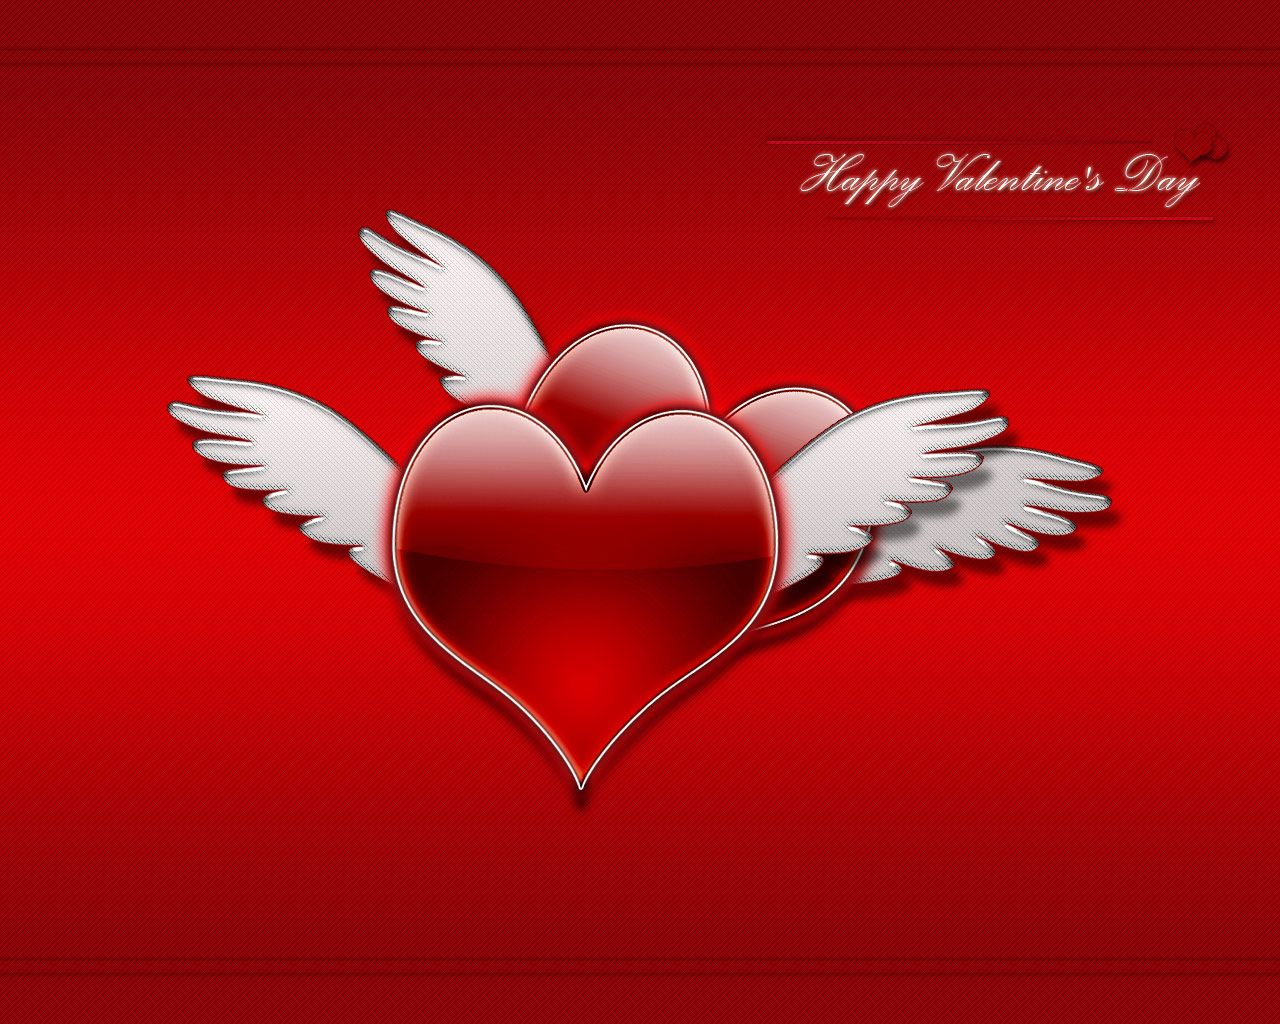 Happy Valentines Day Wallpapers 1280x1024